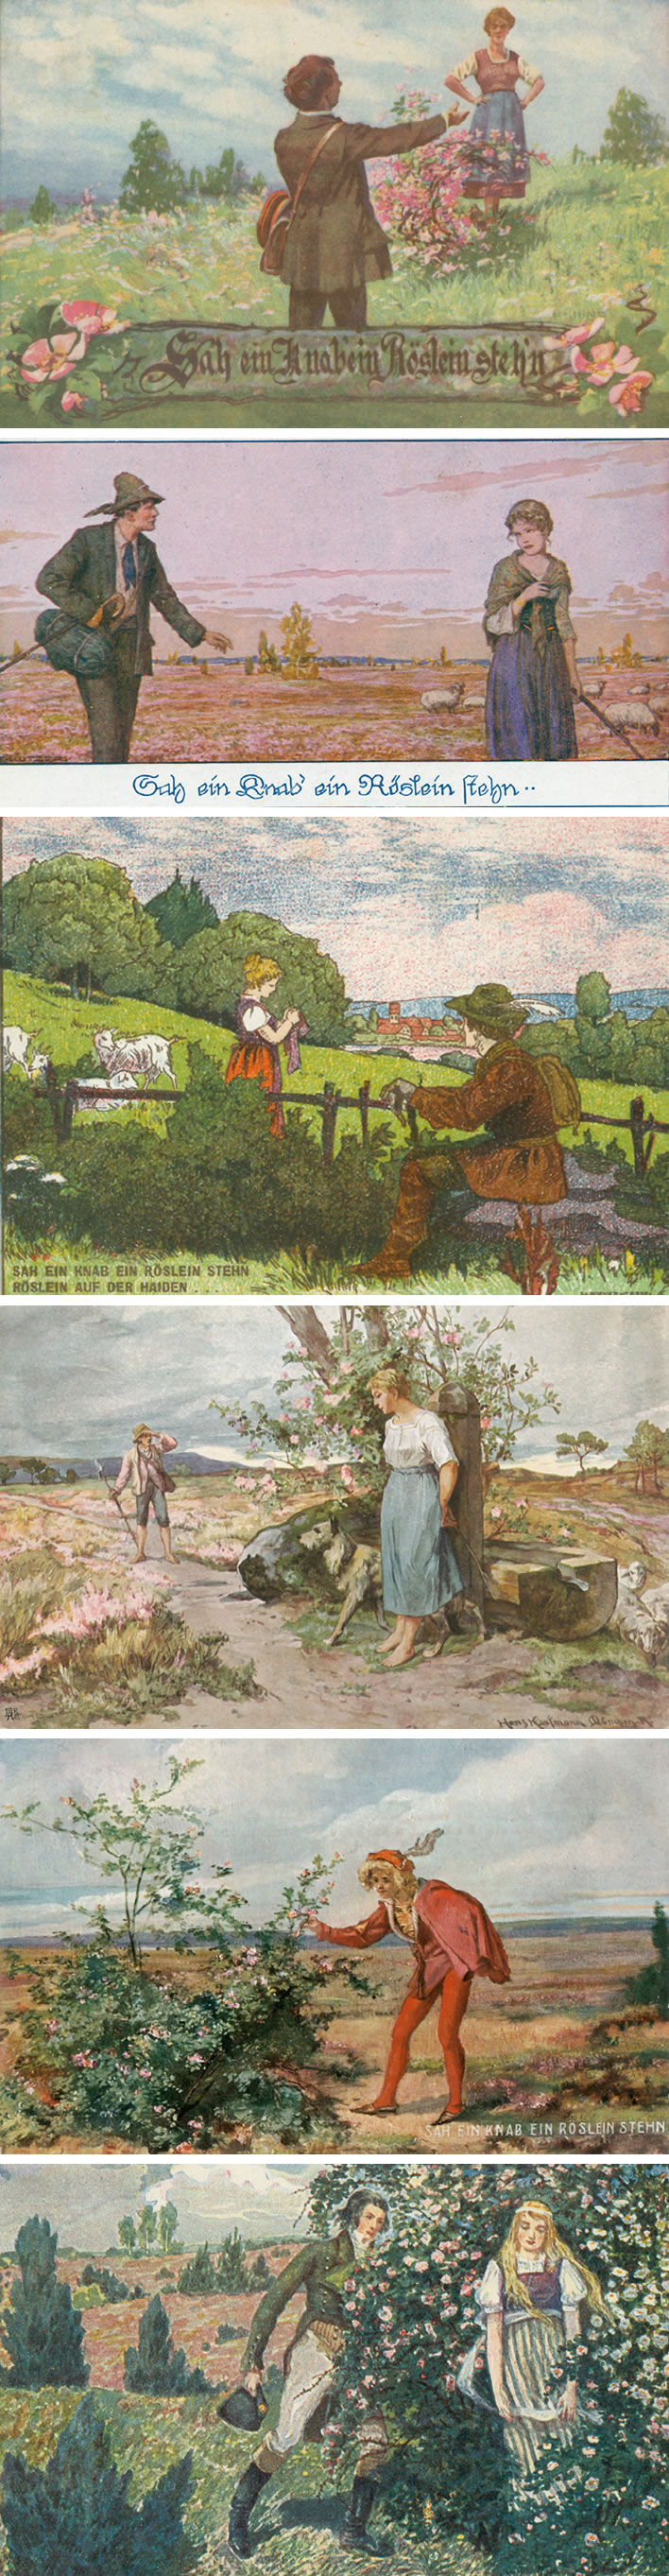 'Heidenröslein' illustrations on postcards